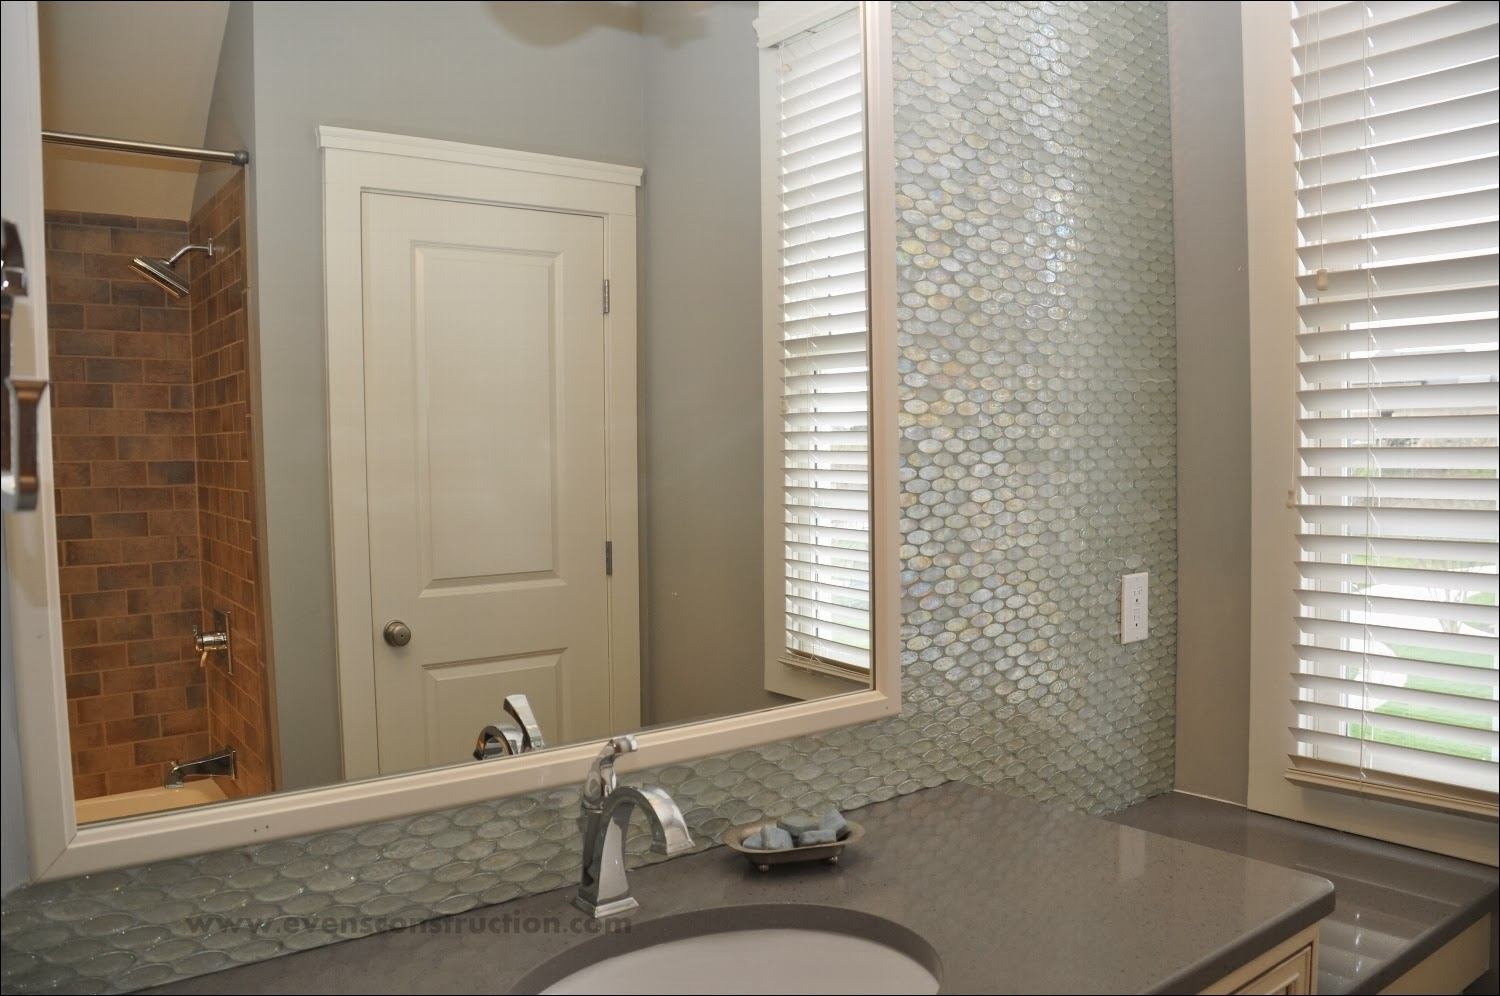 Cool Bathroom Remodel Ideasbathroom Designs Small Bathroom Remodel Pictures Tile Home Decorating